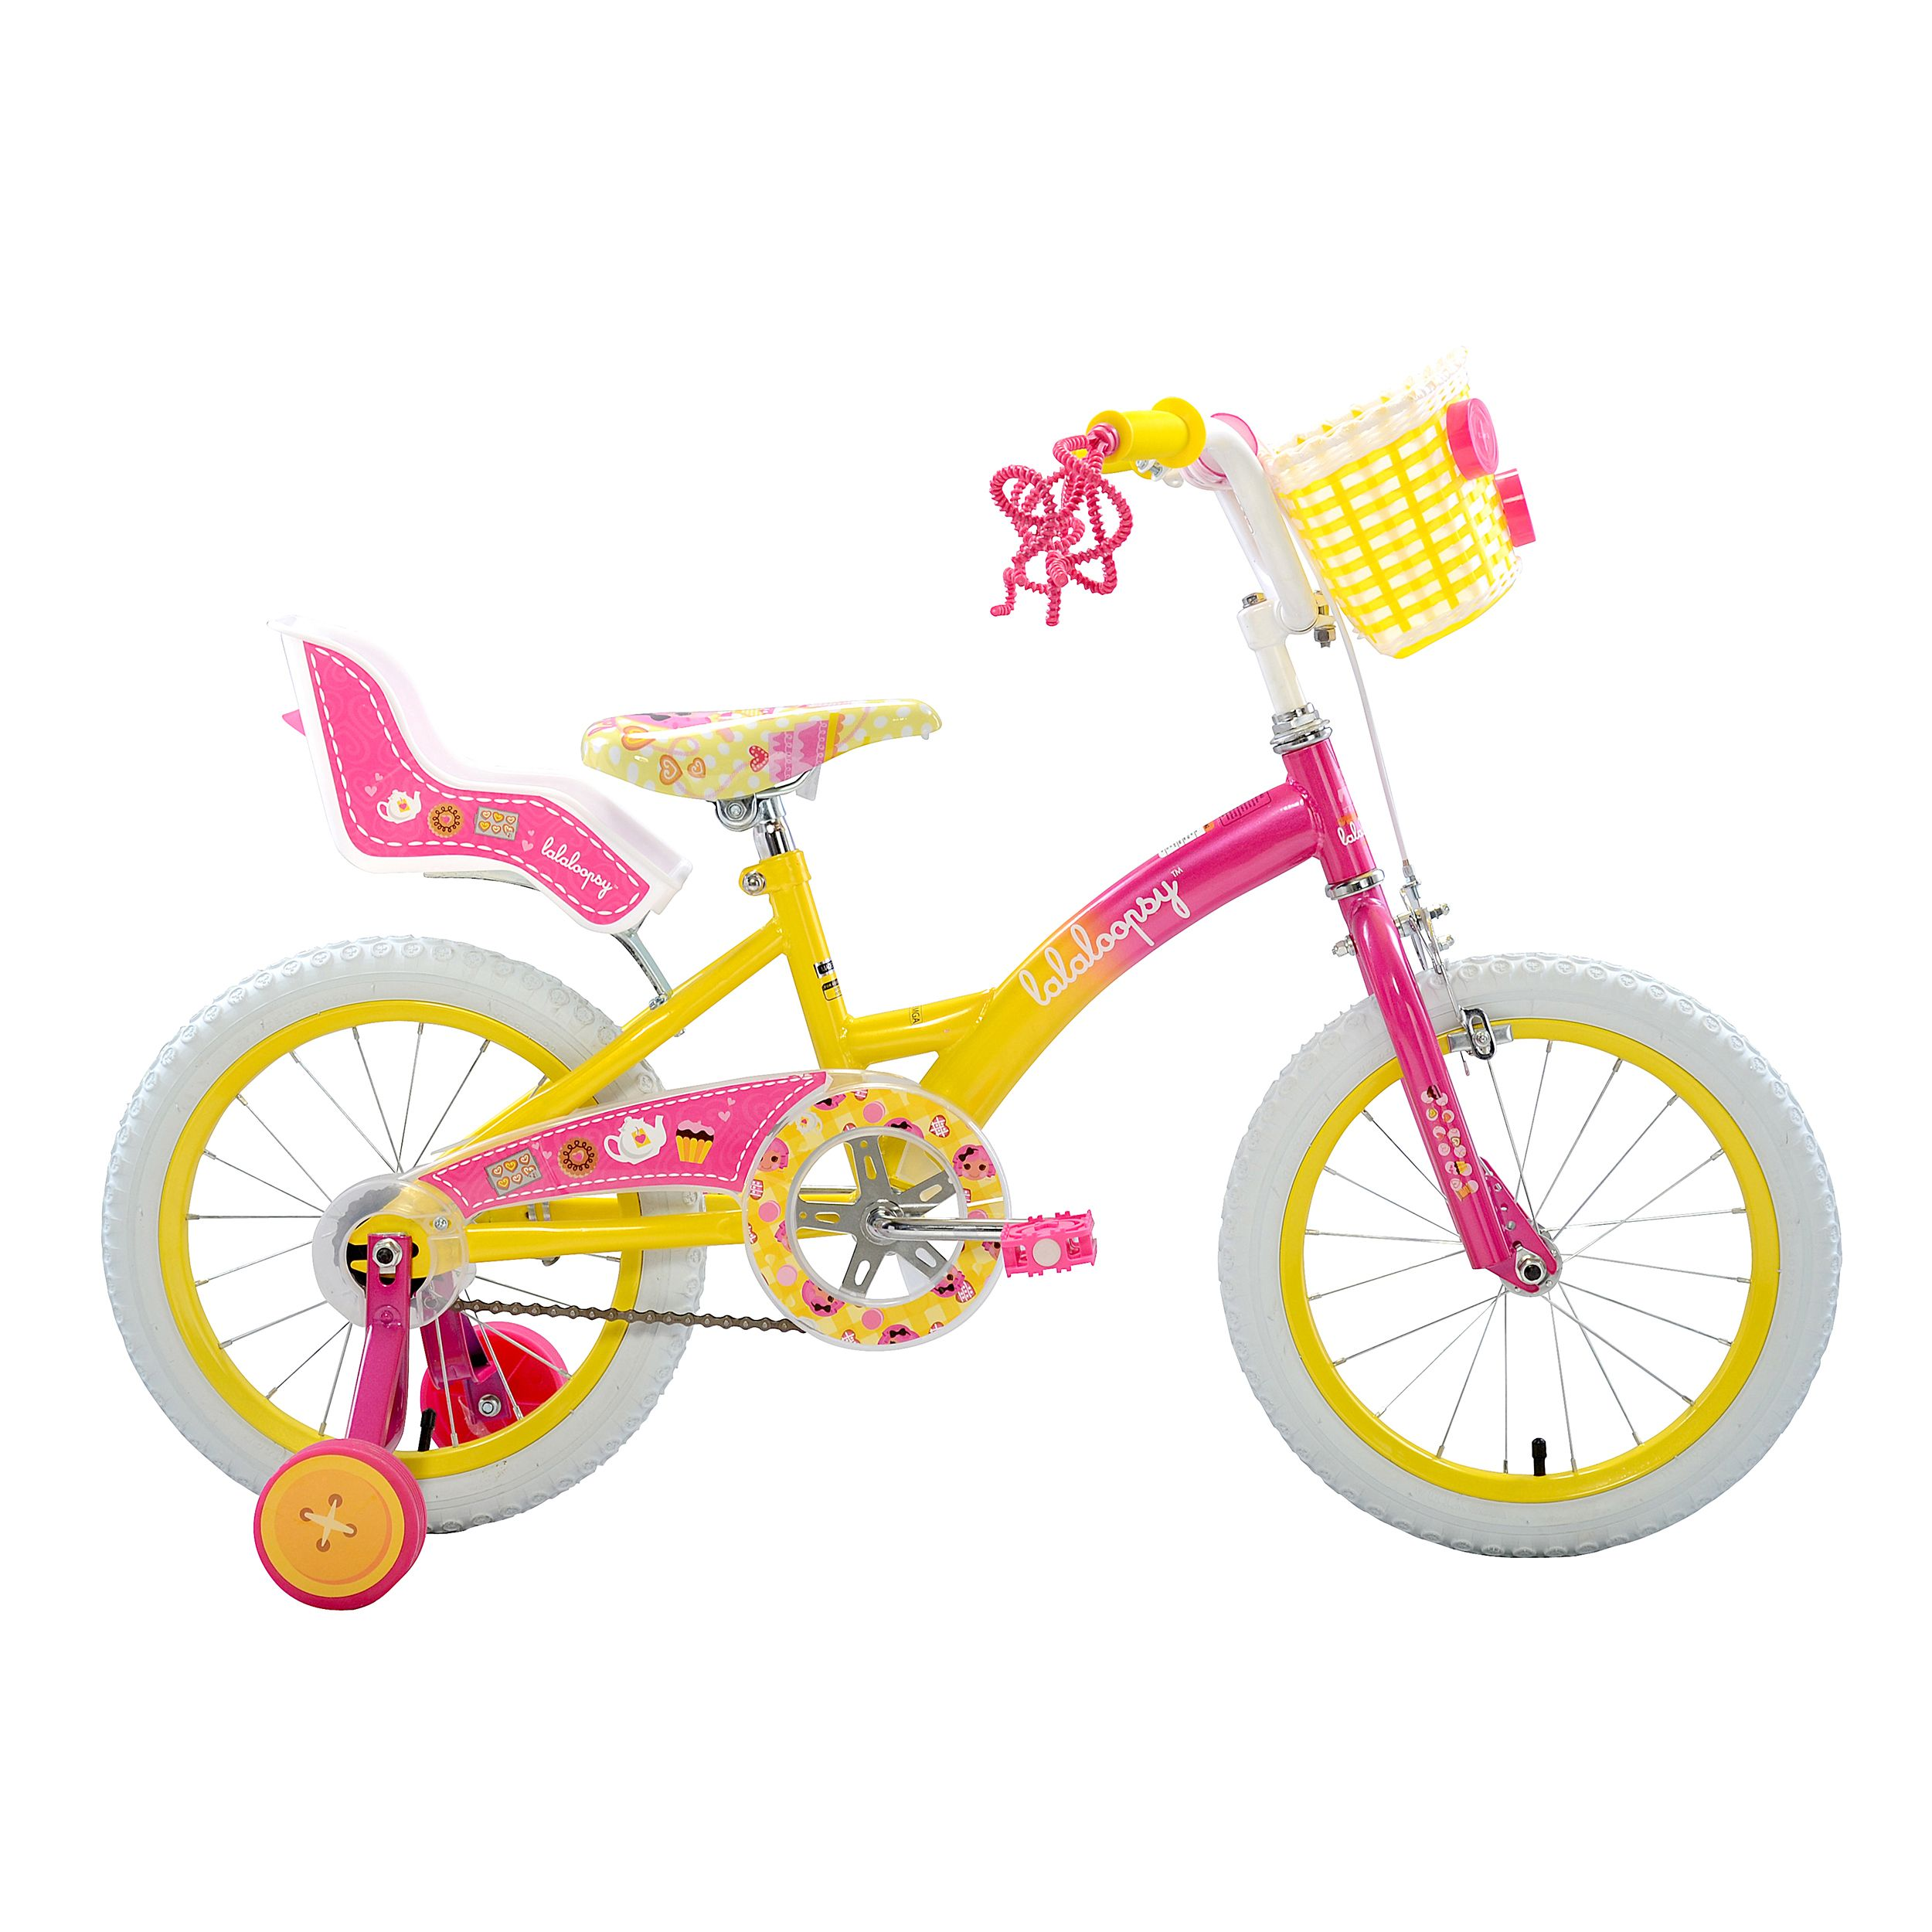 Lalaloopsy 16 Inch Girls Bike Pink Girls 16 Inch Bike Bikes